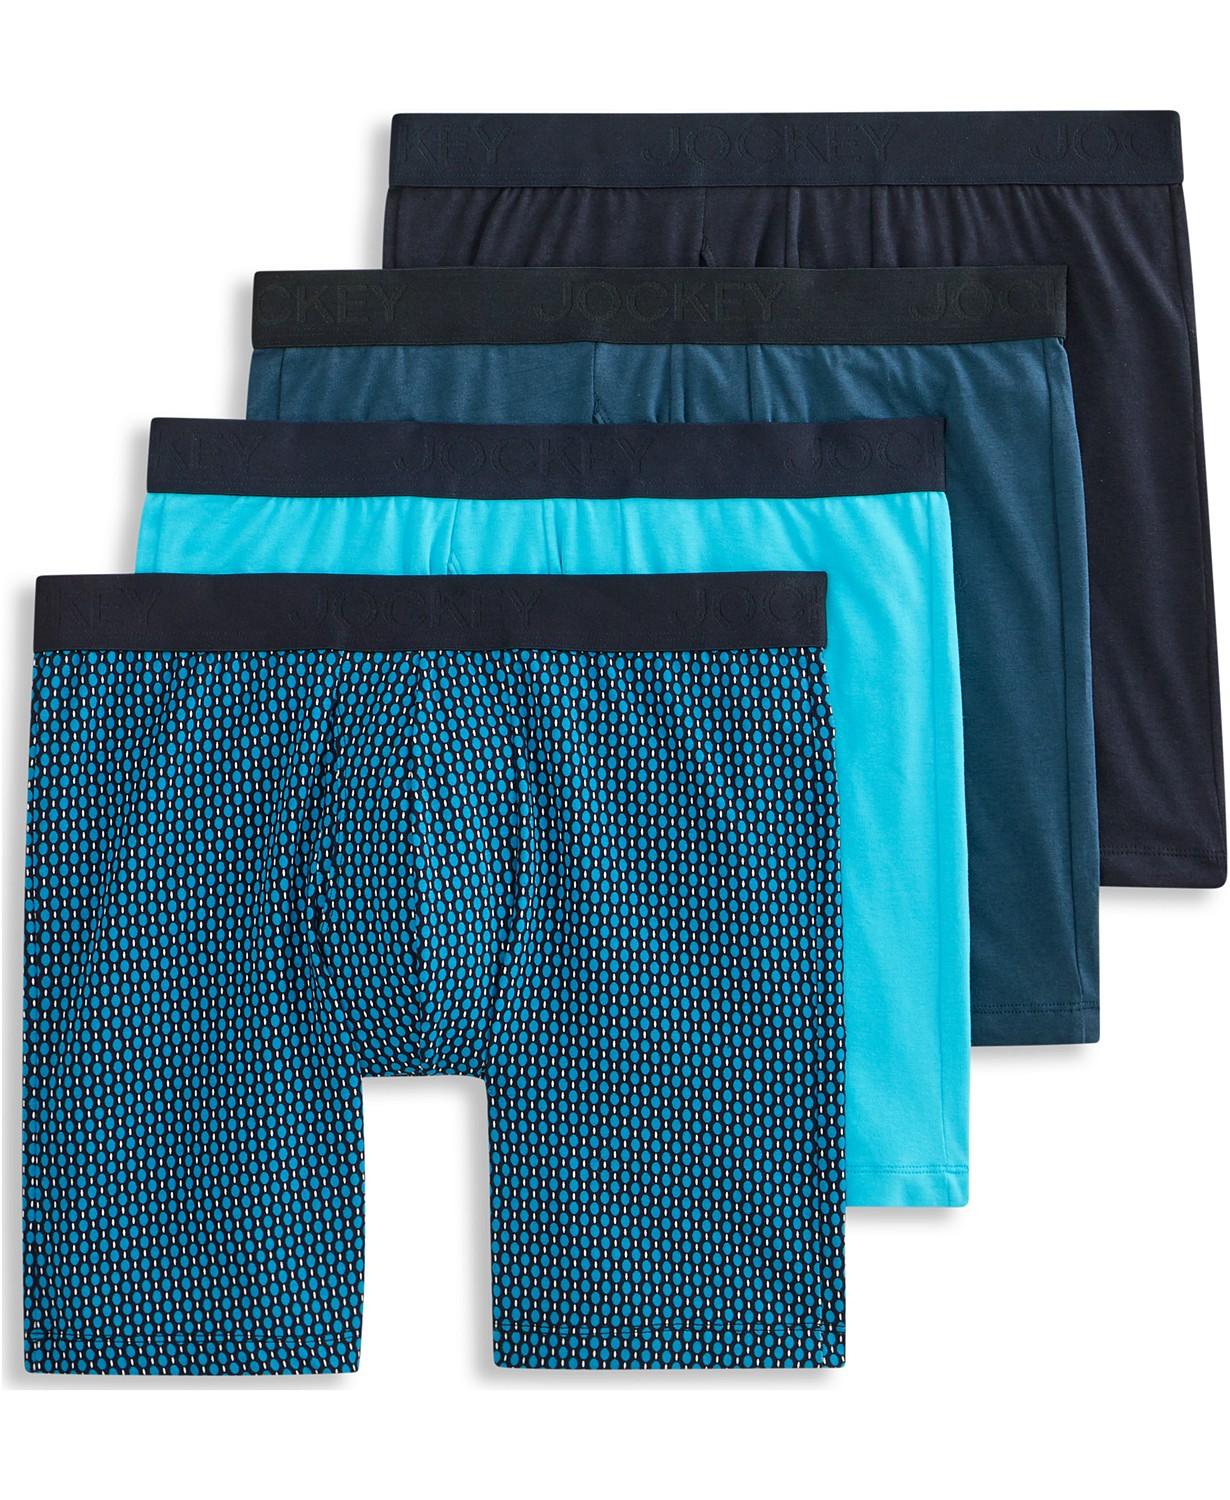 4-Pack Jockey Men's Flex 365 Cotton Stretch Boxer Brief